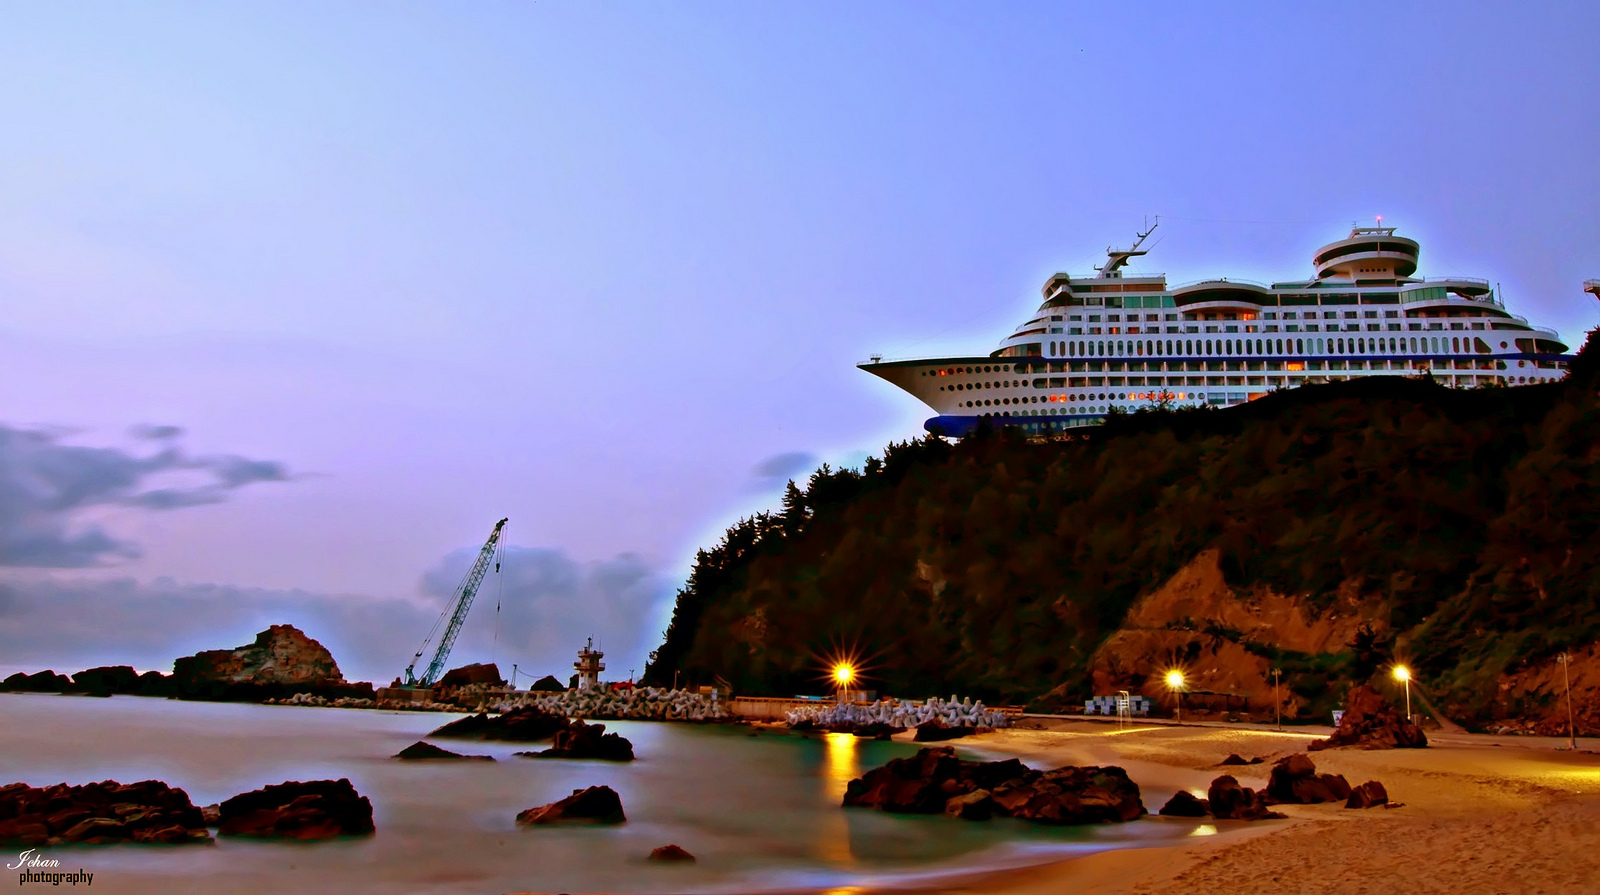 Sun cruise hotel south korea unusual places for Interesting hotels